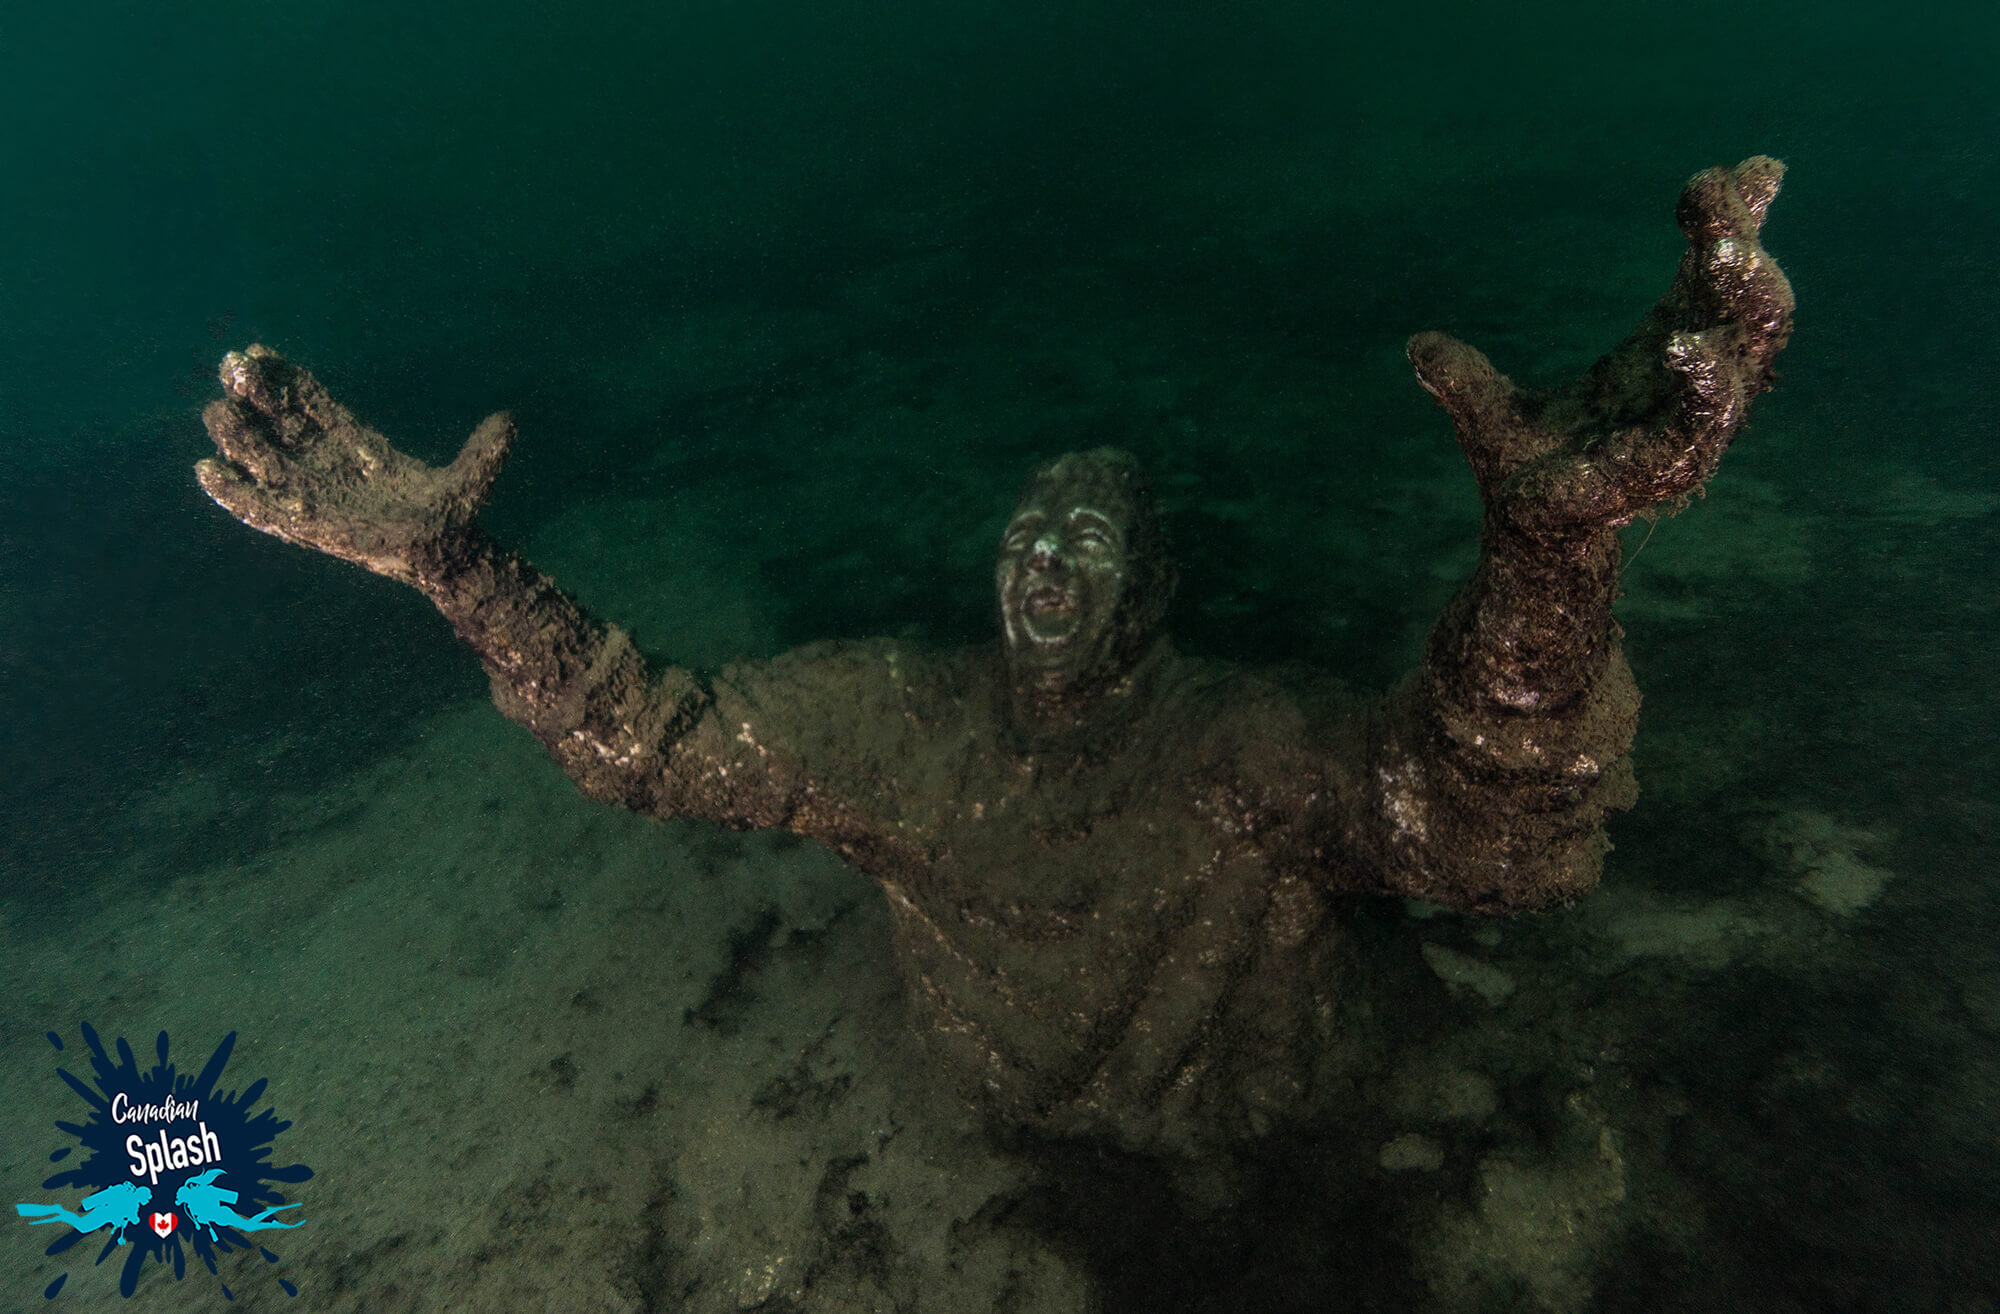 A Statue With Arms Wide Open In Centeen Park, Brockville, Ontario Scuba Diving, Canada